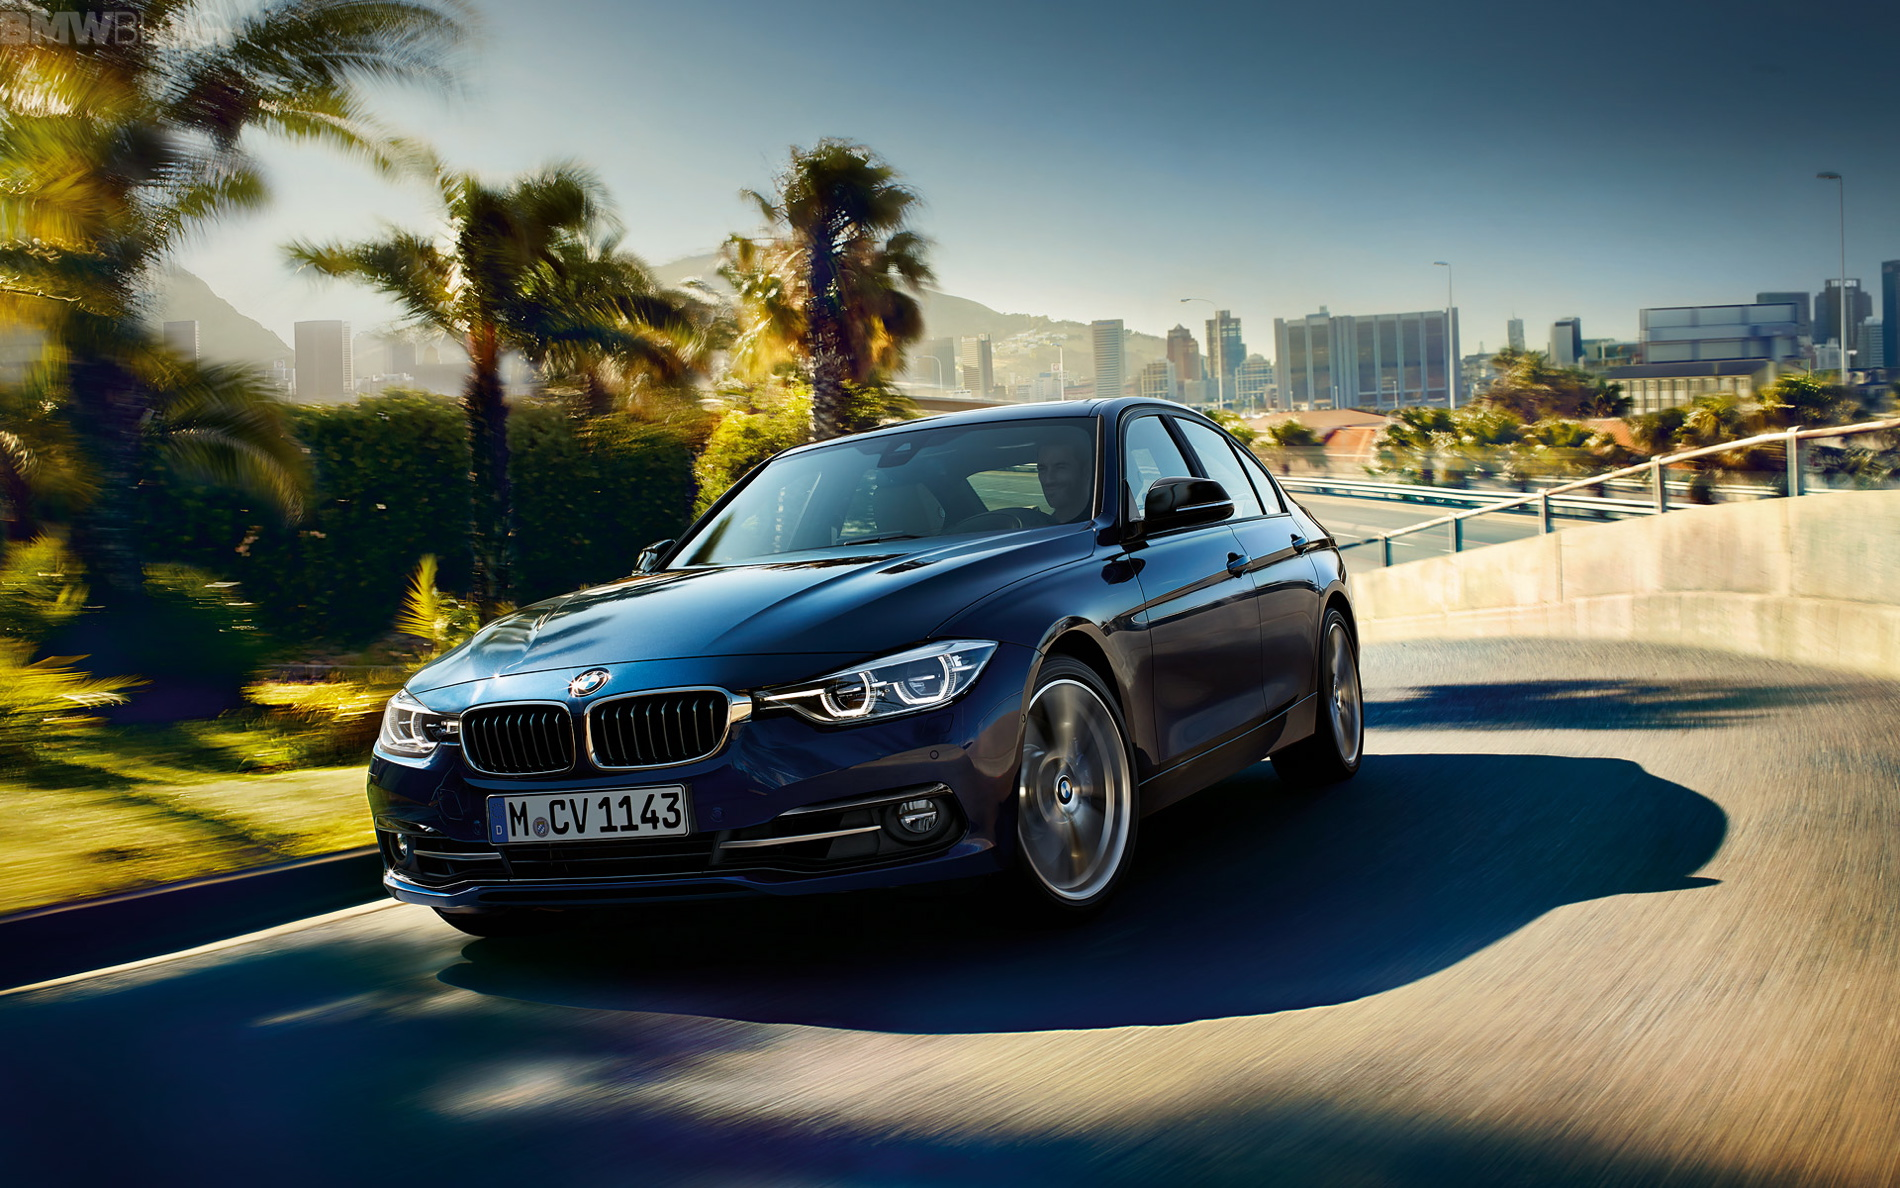 wallpapers - 2015 bmw 3 series facelift